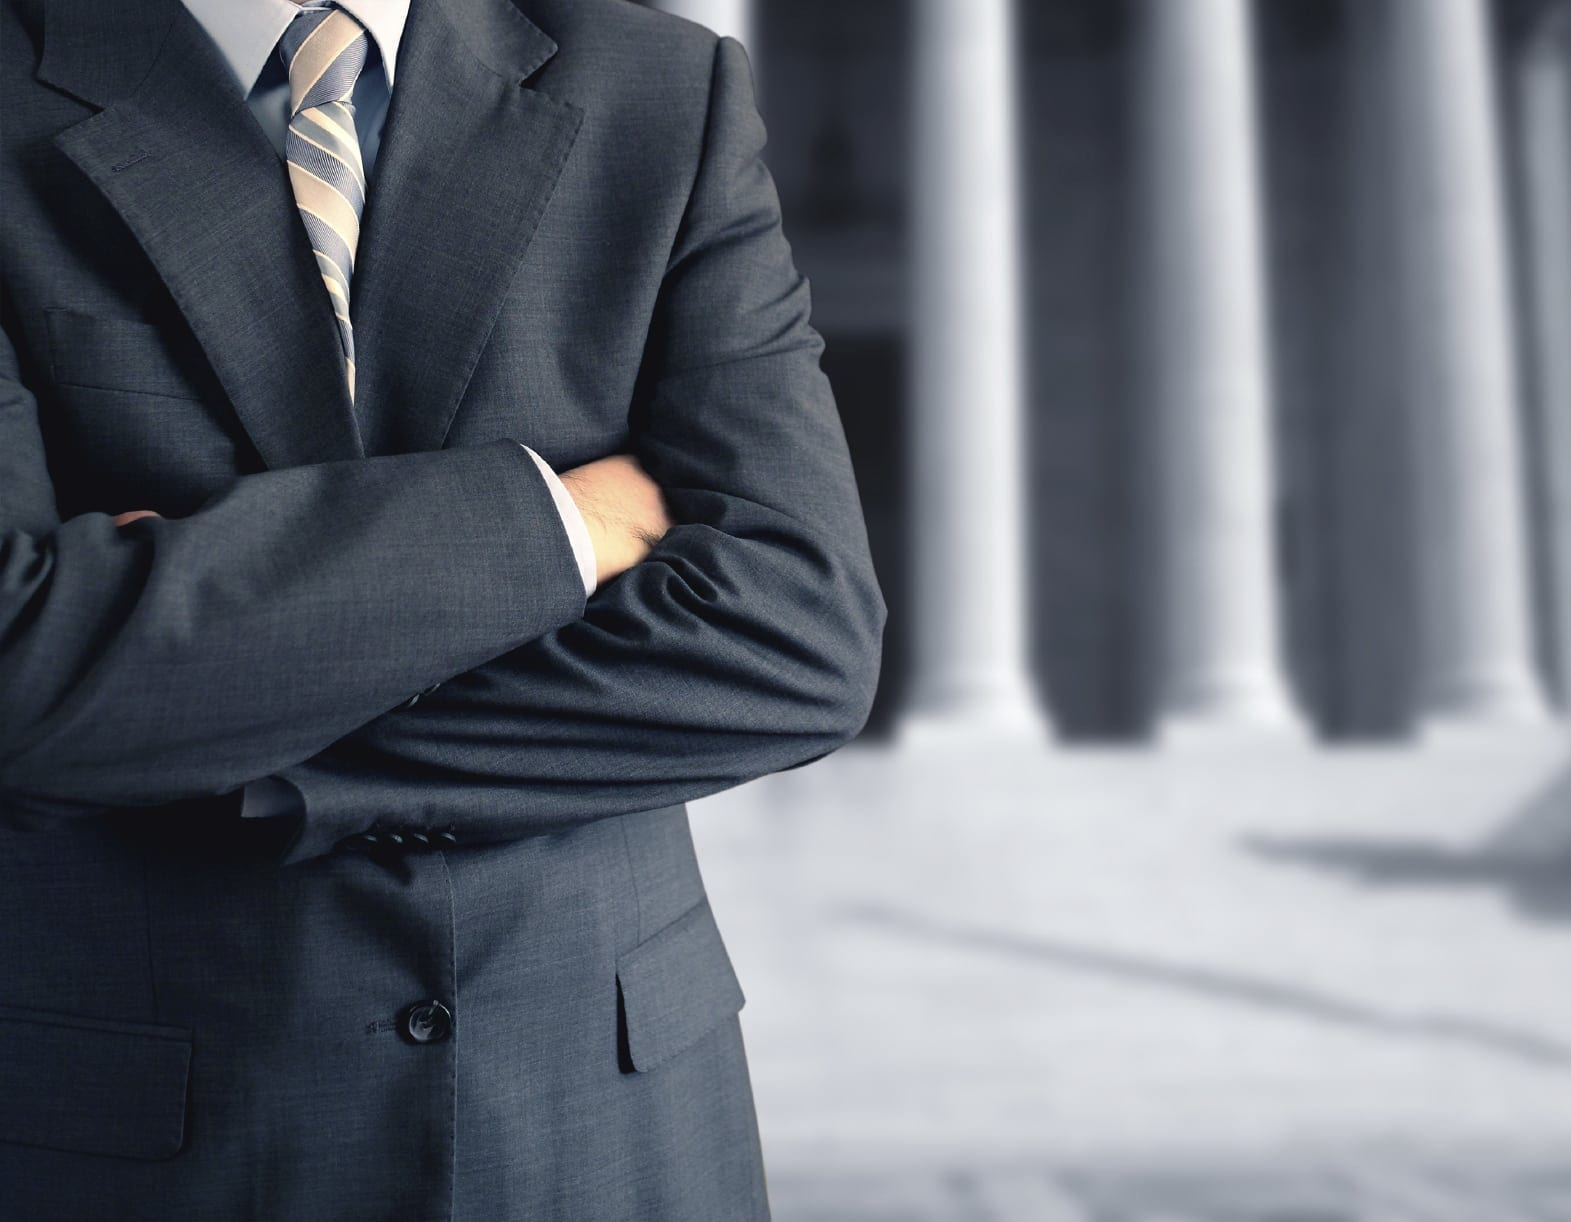 Attorney With Arms Crossed Stock Photo